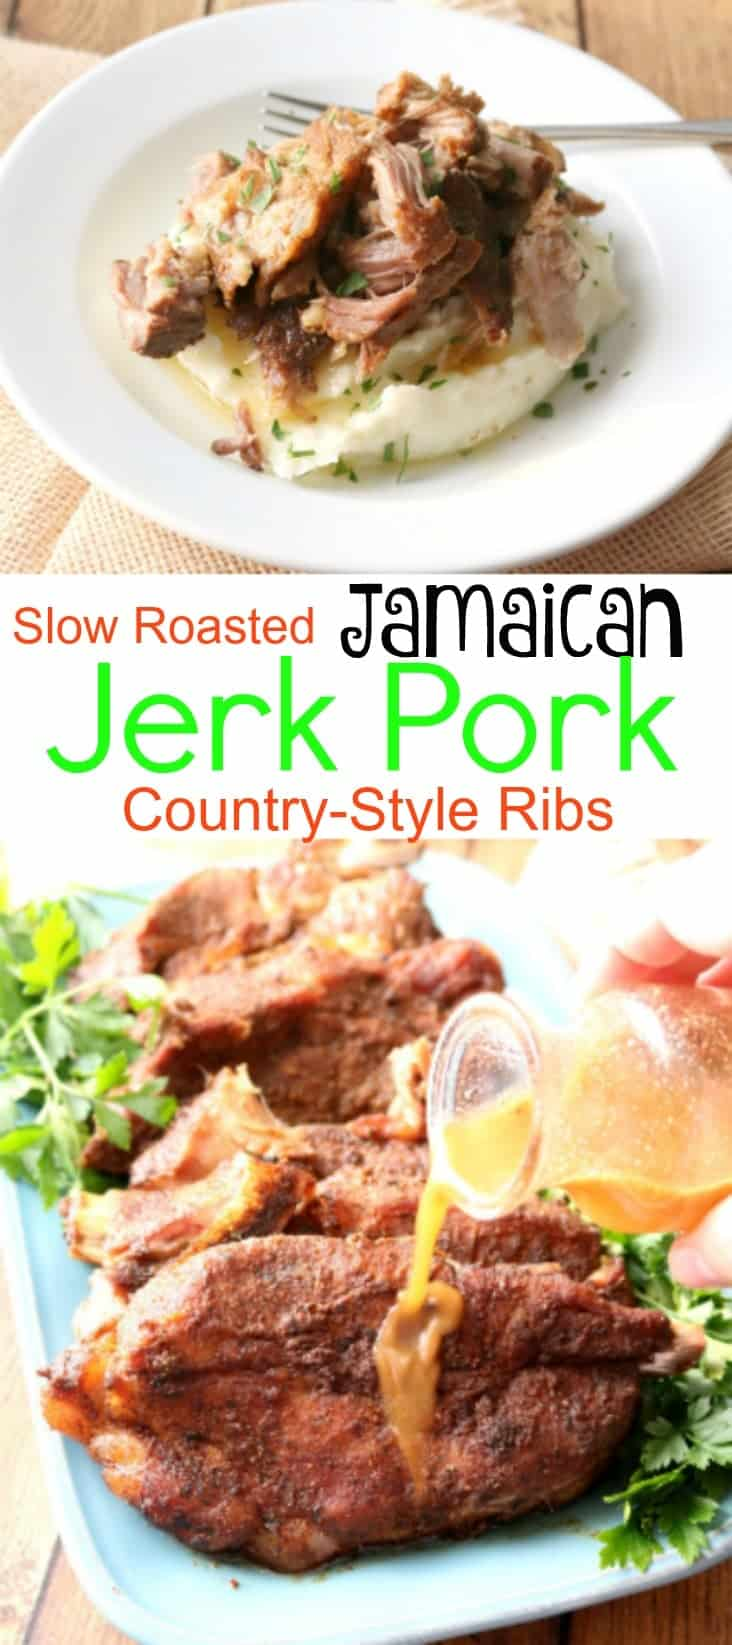 These Jamaican Jerk Pork Ribs bring the flavors of the Caribbean into your home. They are slow roasted in the oven for fall off the bone goodness your family will crave! Serve with traditional sides like fried plantains and rice with pigeon peas for a meal straight out of the tropics.